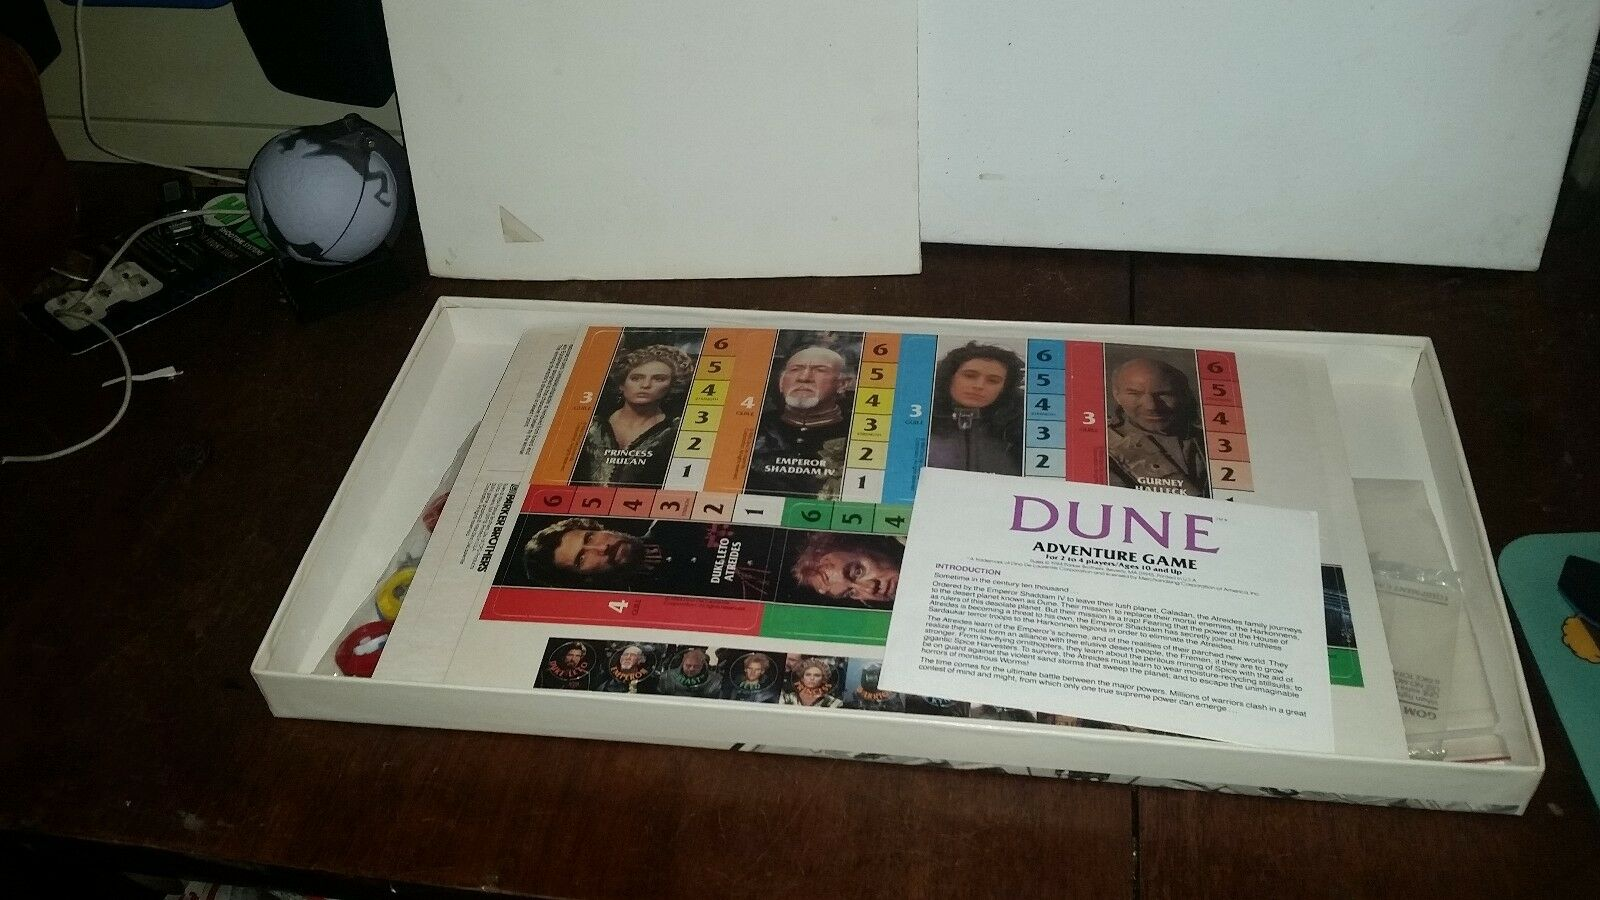 DUNE DUNE DUNE PARKER BROTHERS BOARD GAME DAVID LYNCY FILM MOVIE NO. 0451 1984 73ce27